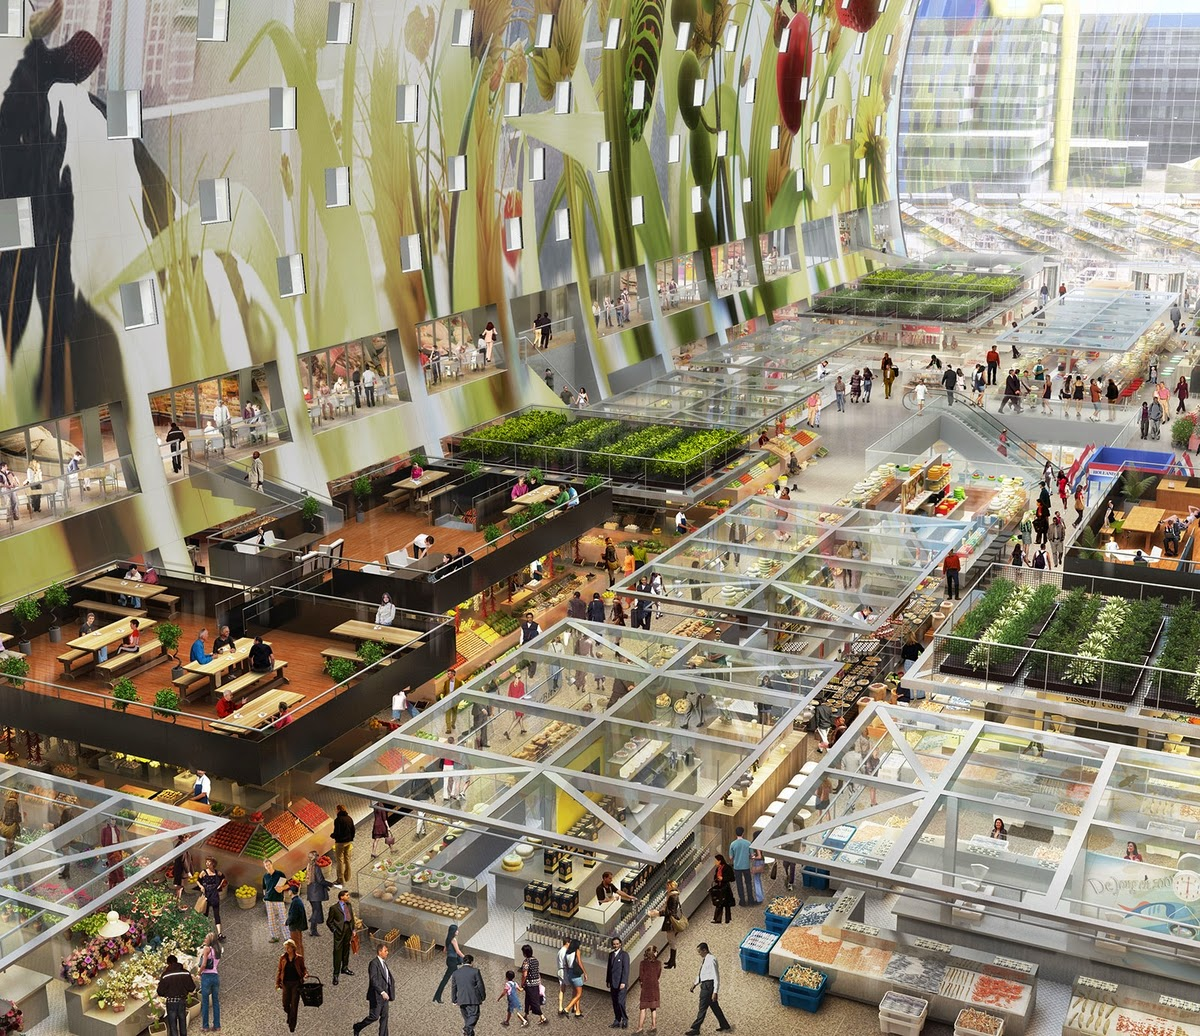 03-Market-Markthal-Apartments-Market-Shops-and-Catering-Parking-www-designstack-co